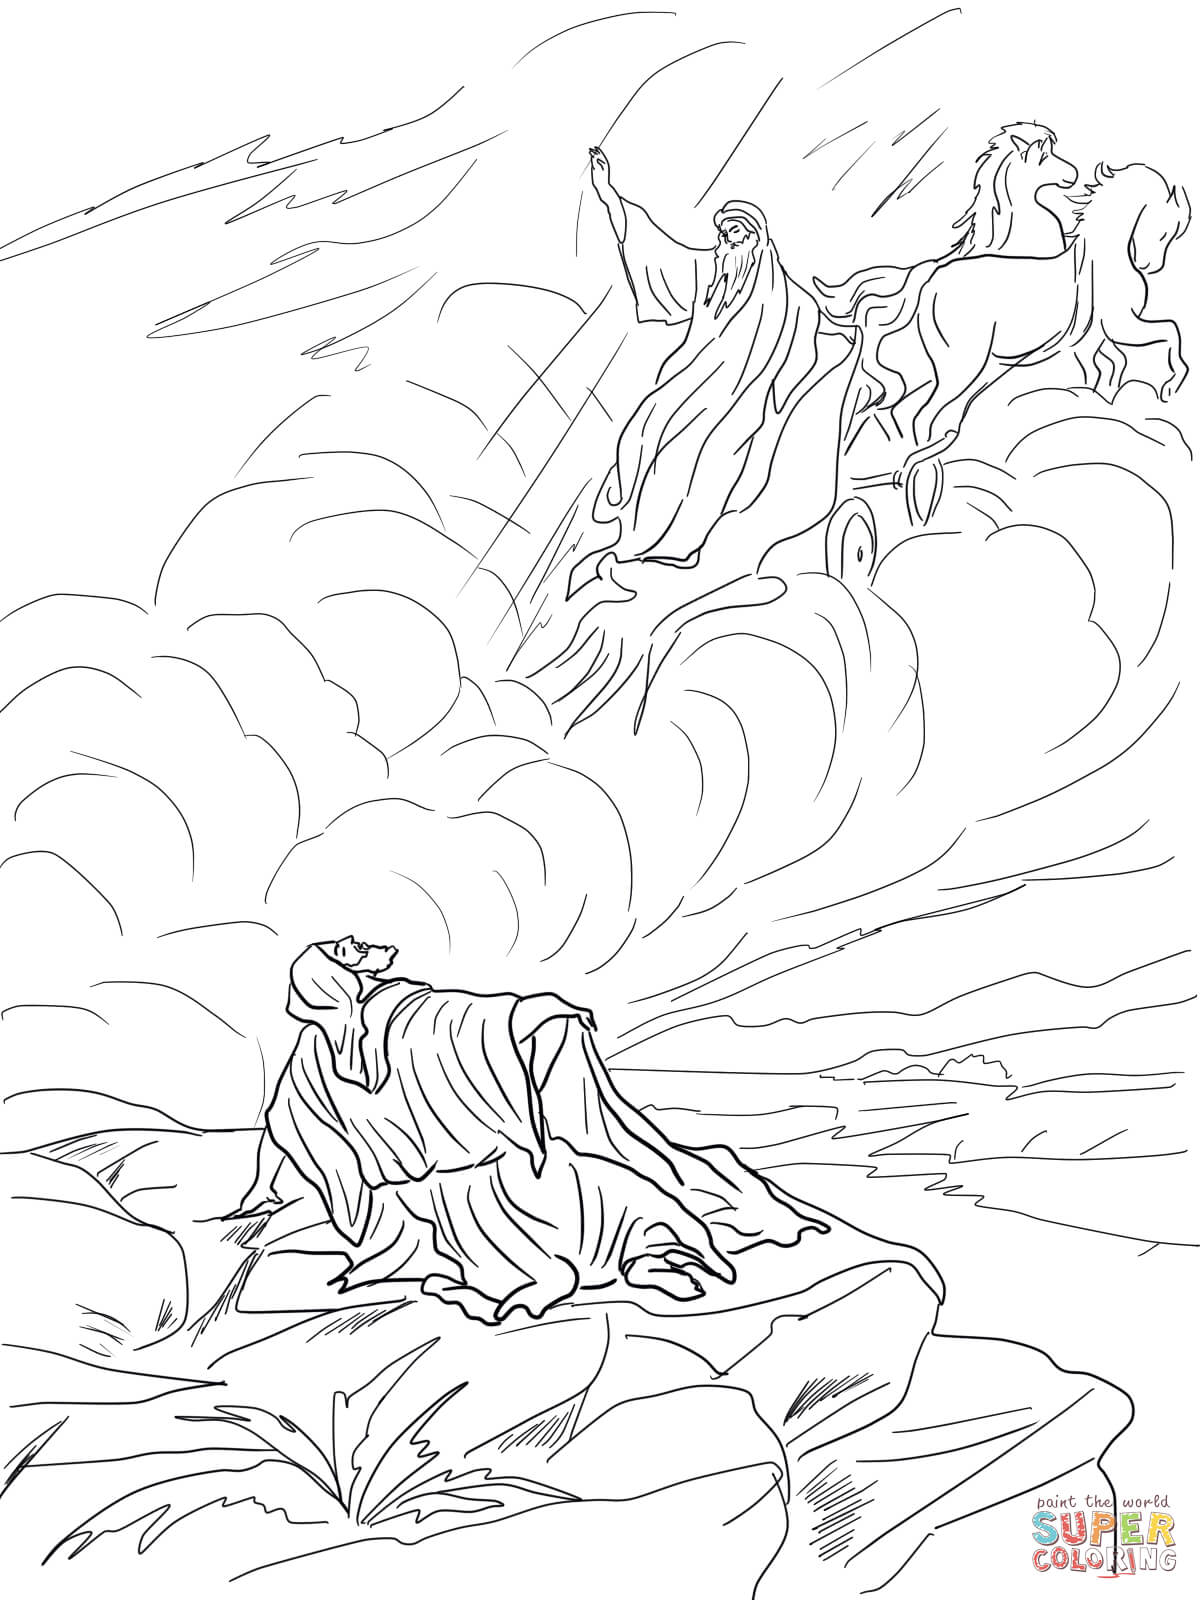 Elijah And The Chariot Of Fire Coloring Page Coloring Pages